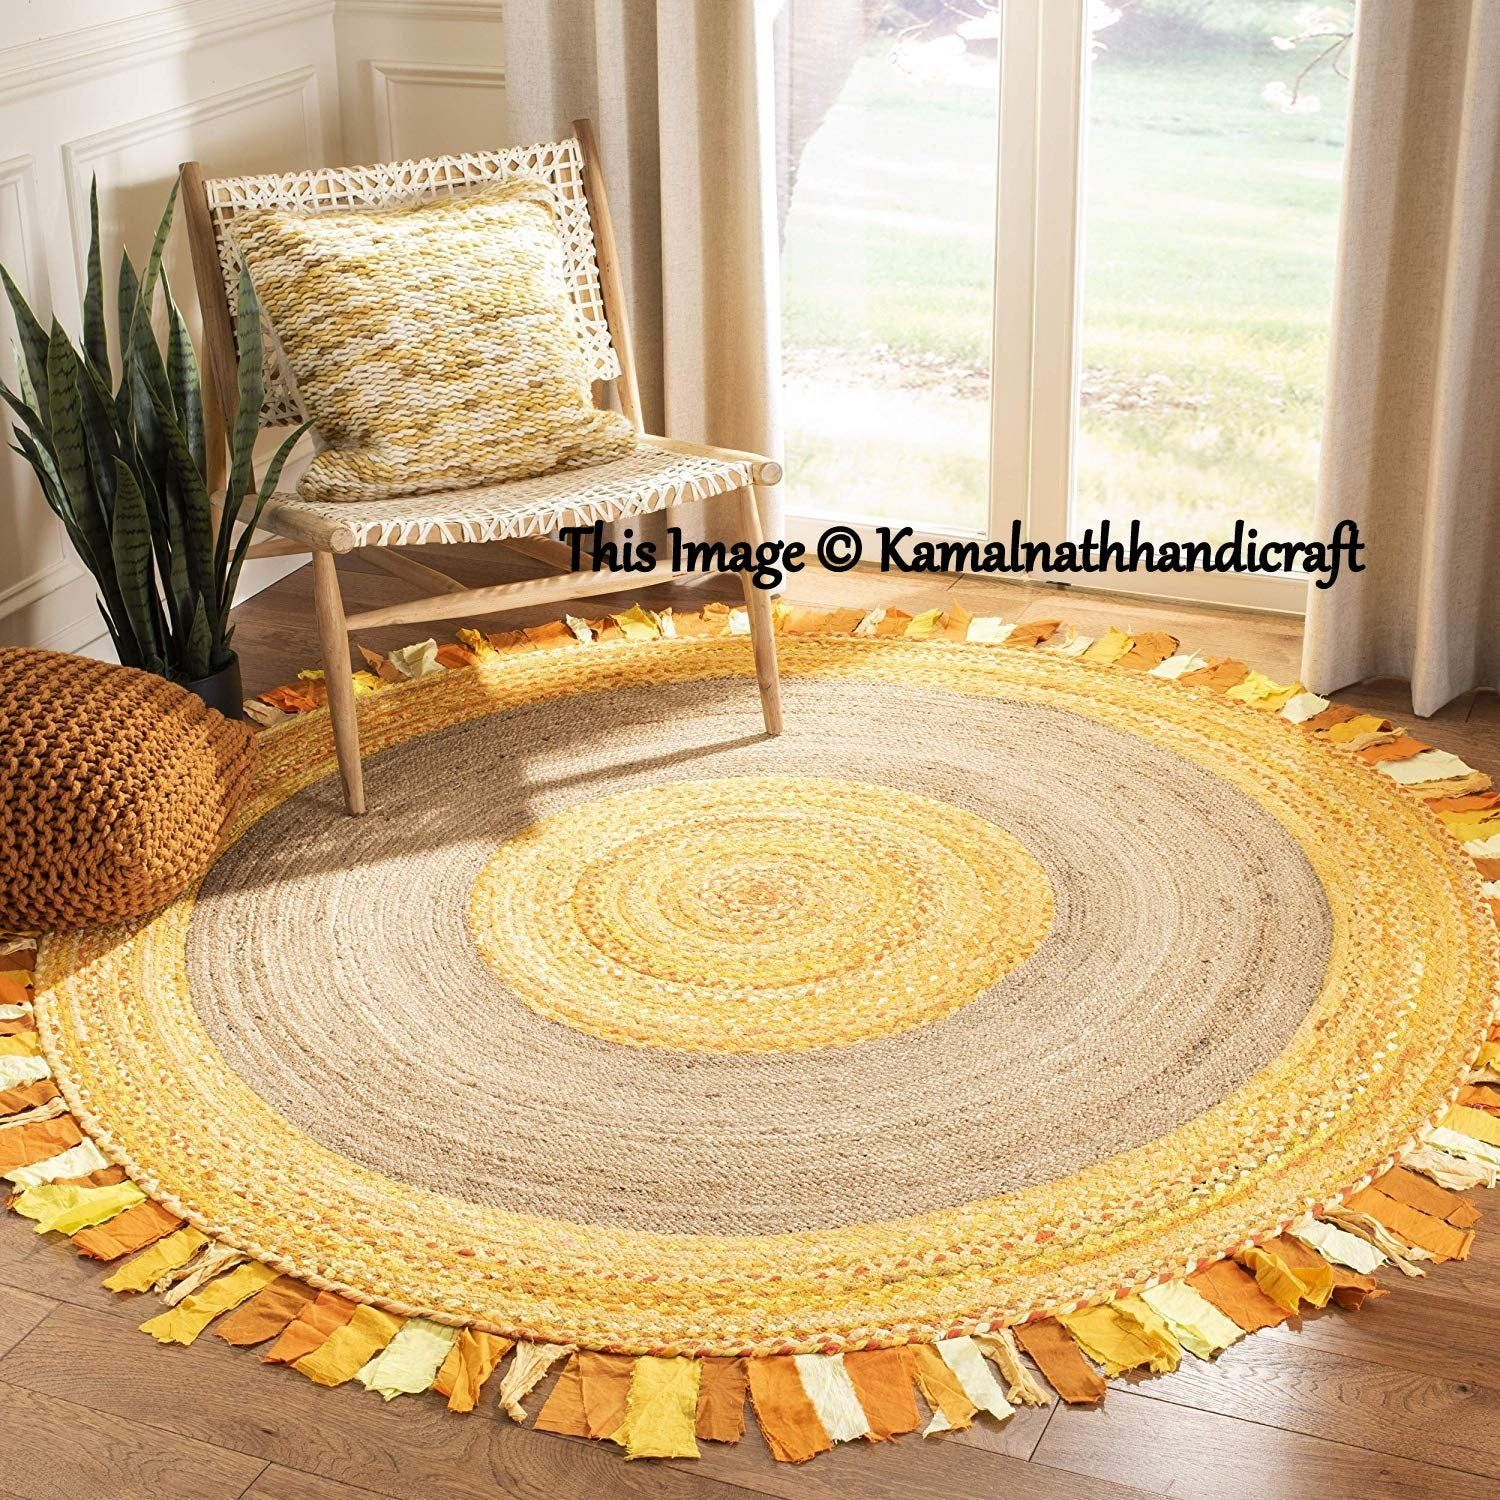 Rug Braided Round Meditation Mat